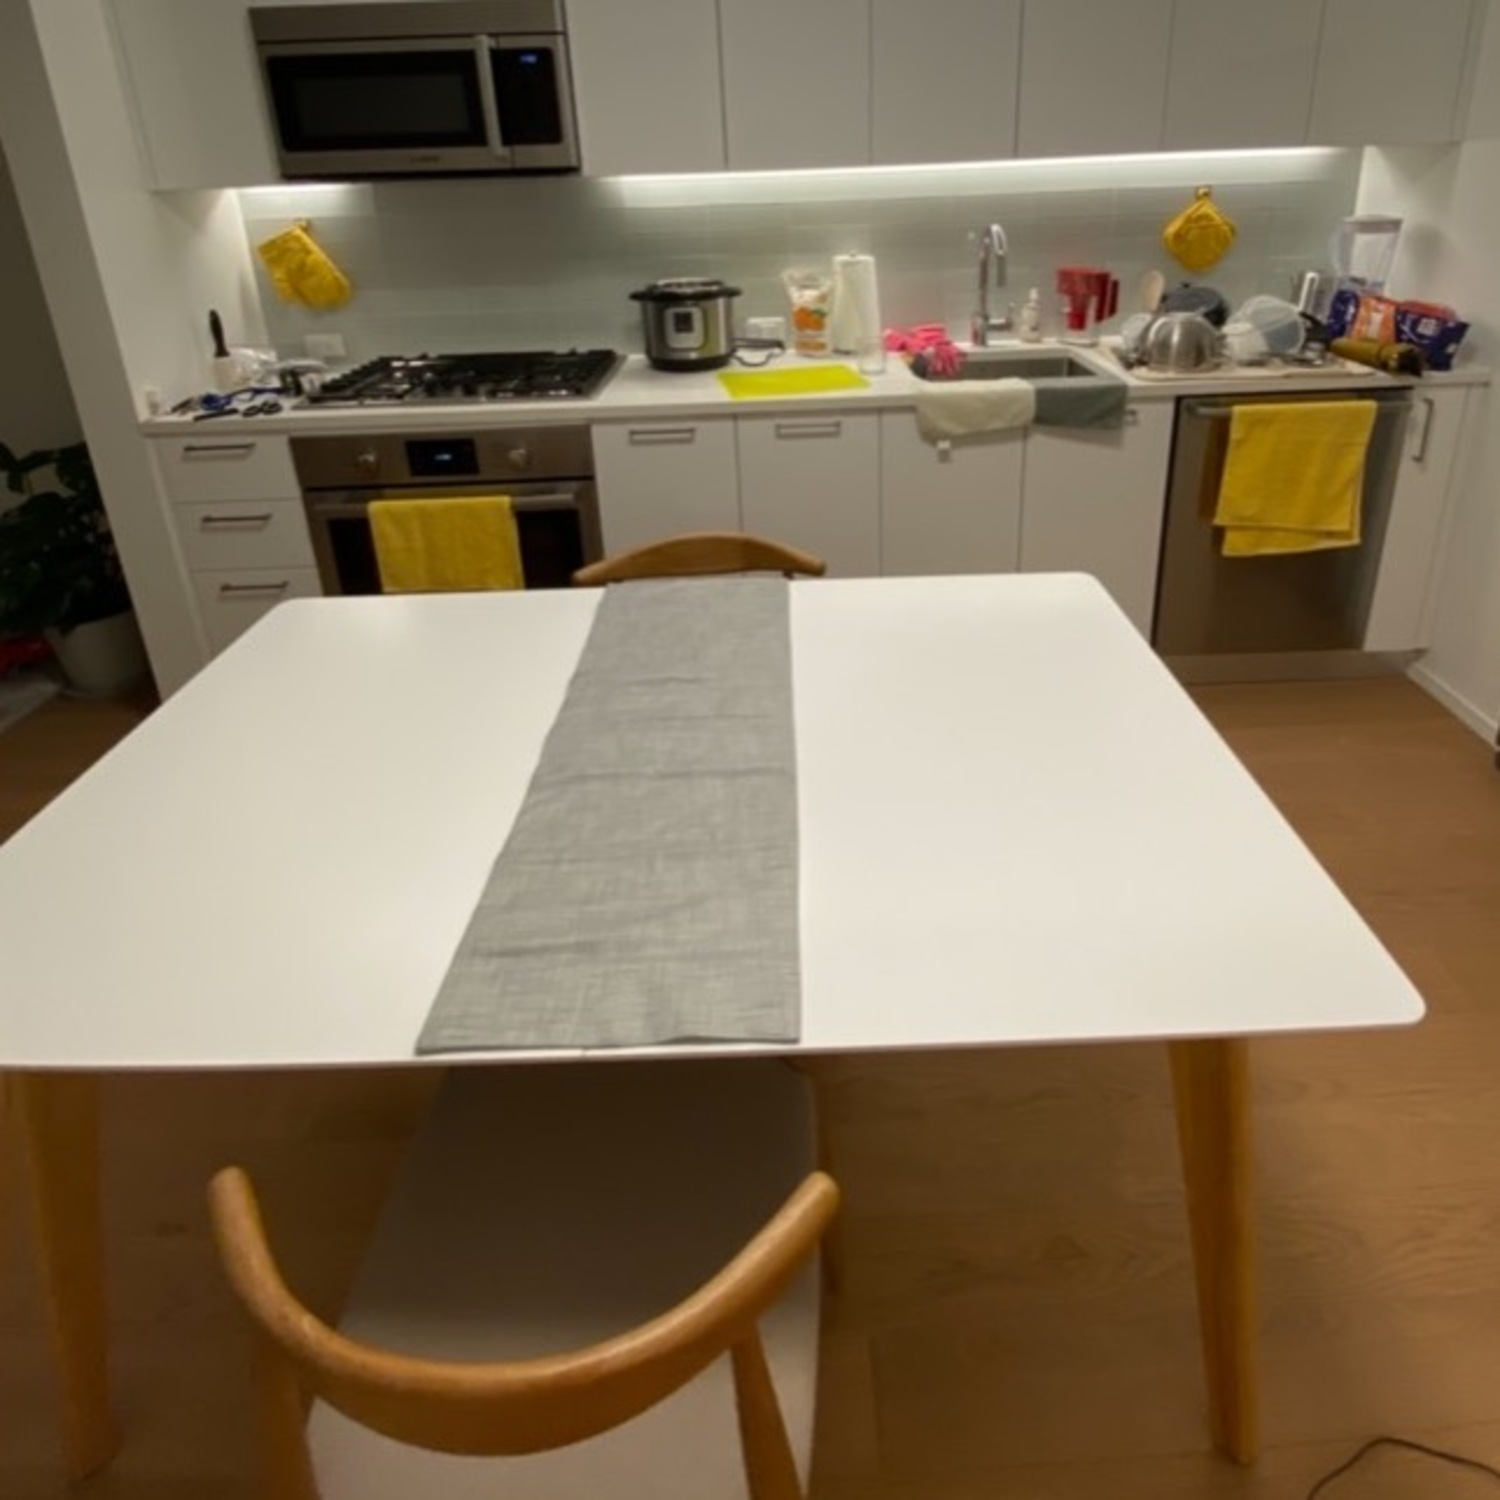 Wayfair Charming White All Modern Extendable Dining Table - image-4